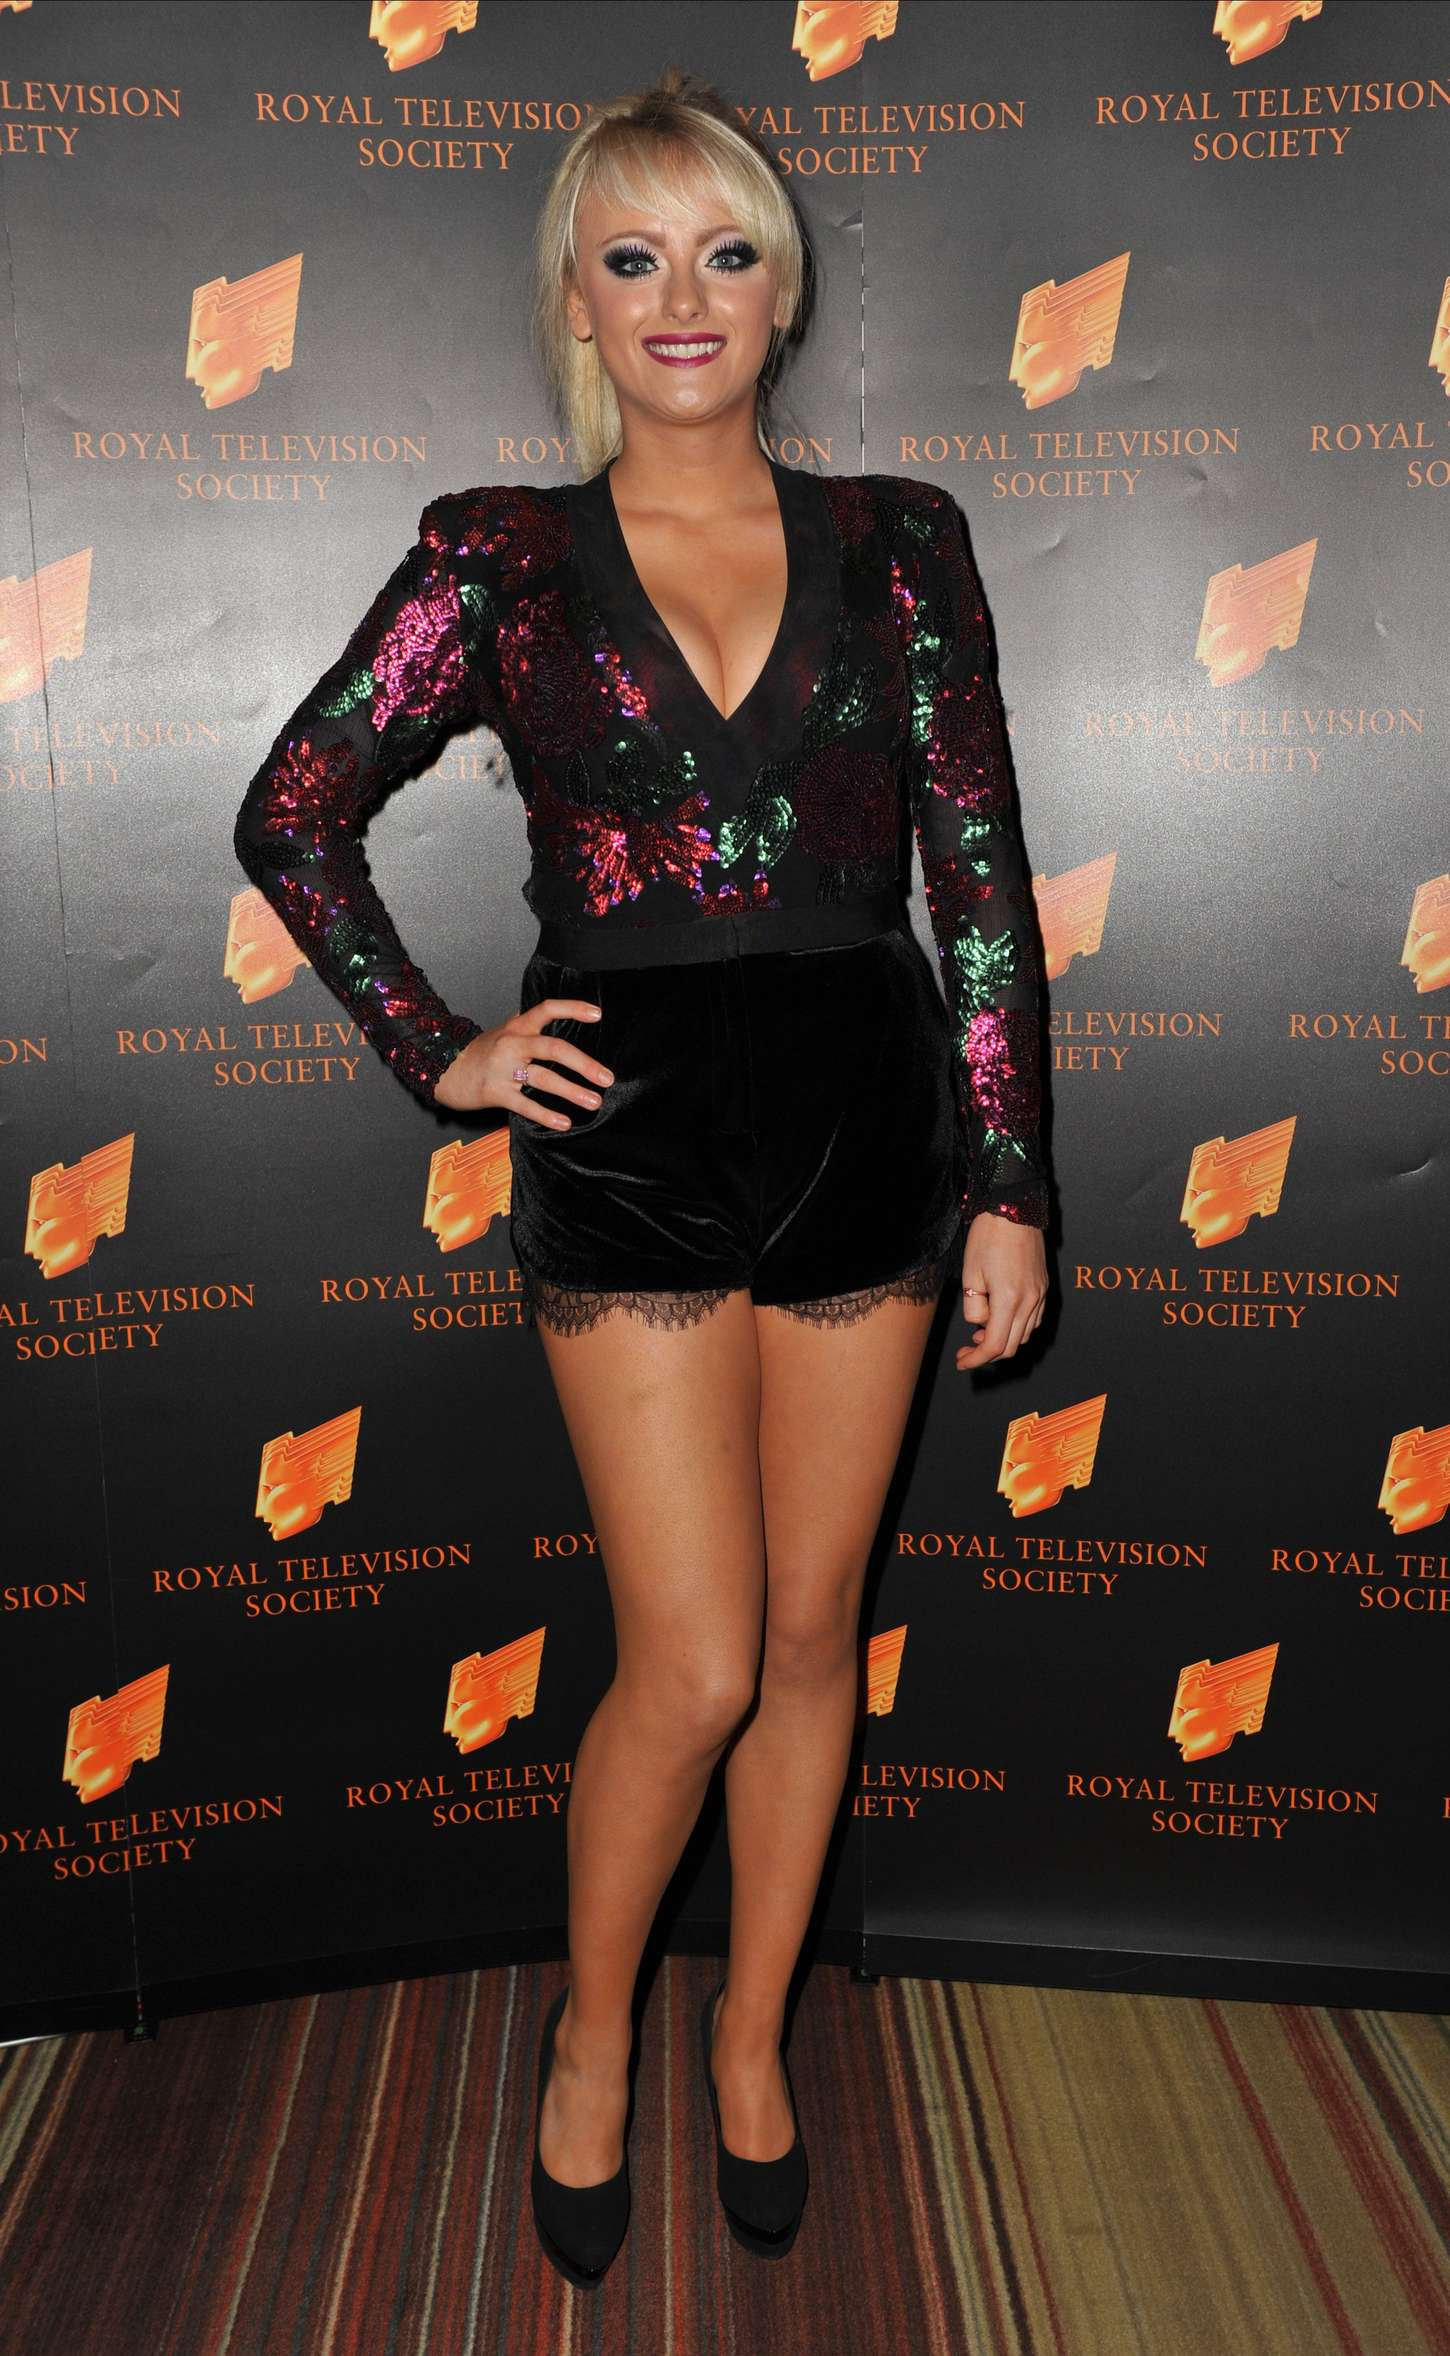 Katie McGlynn RTS Awards in Manchester